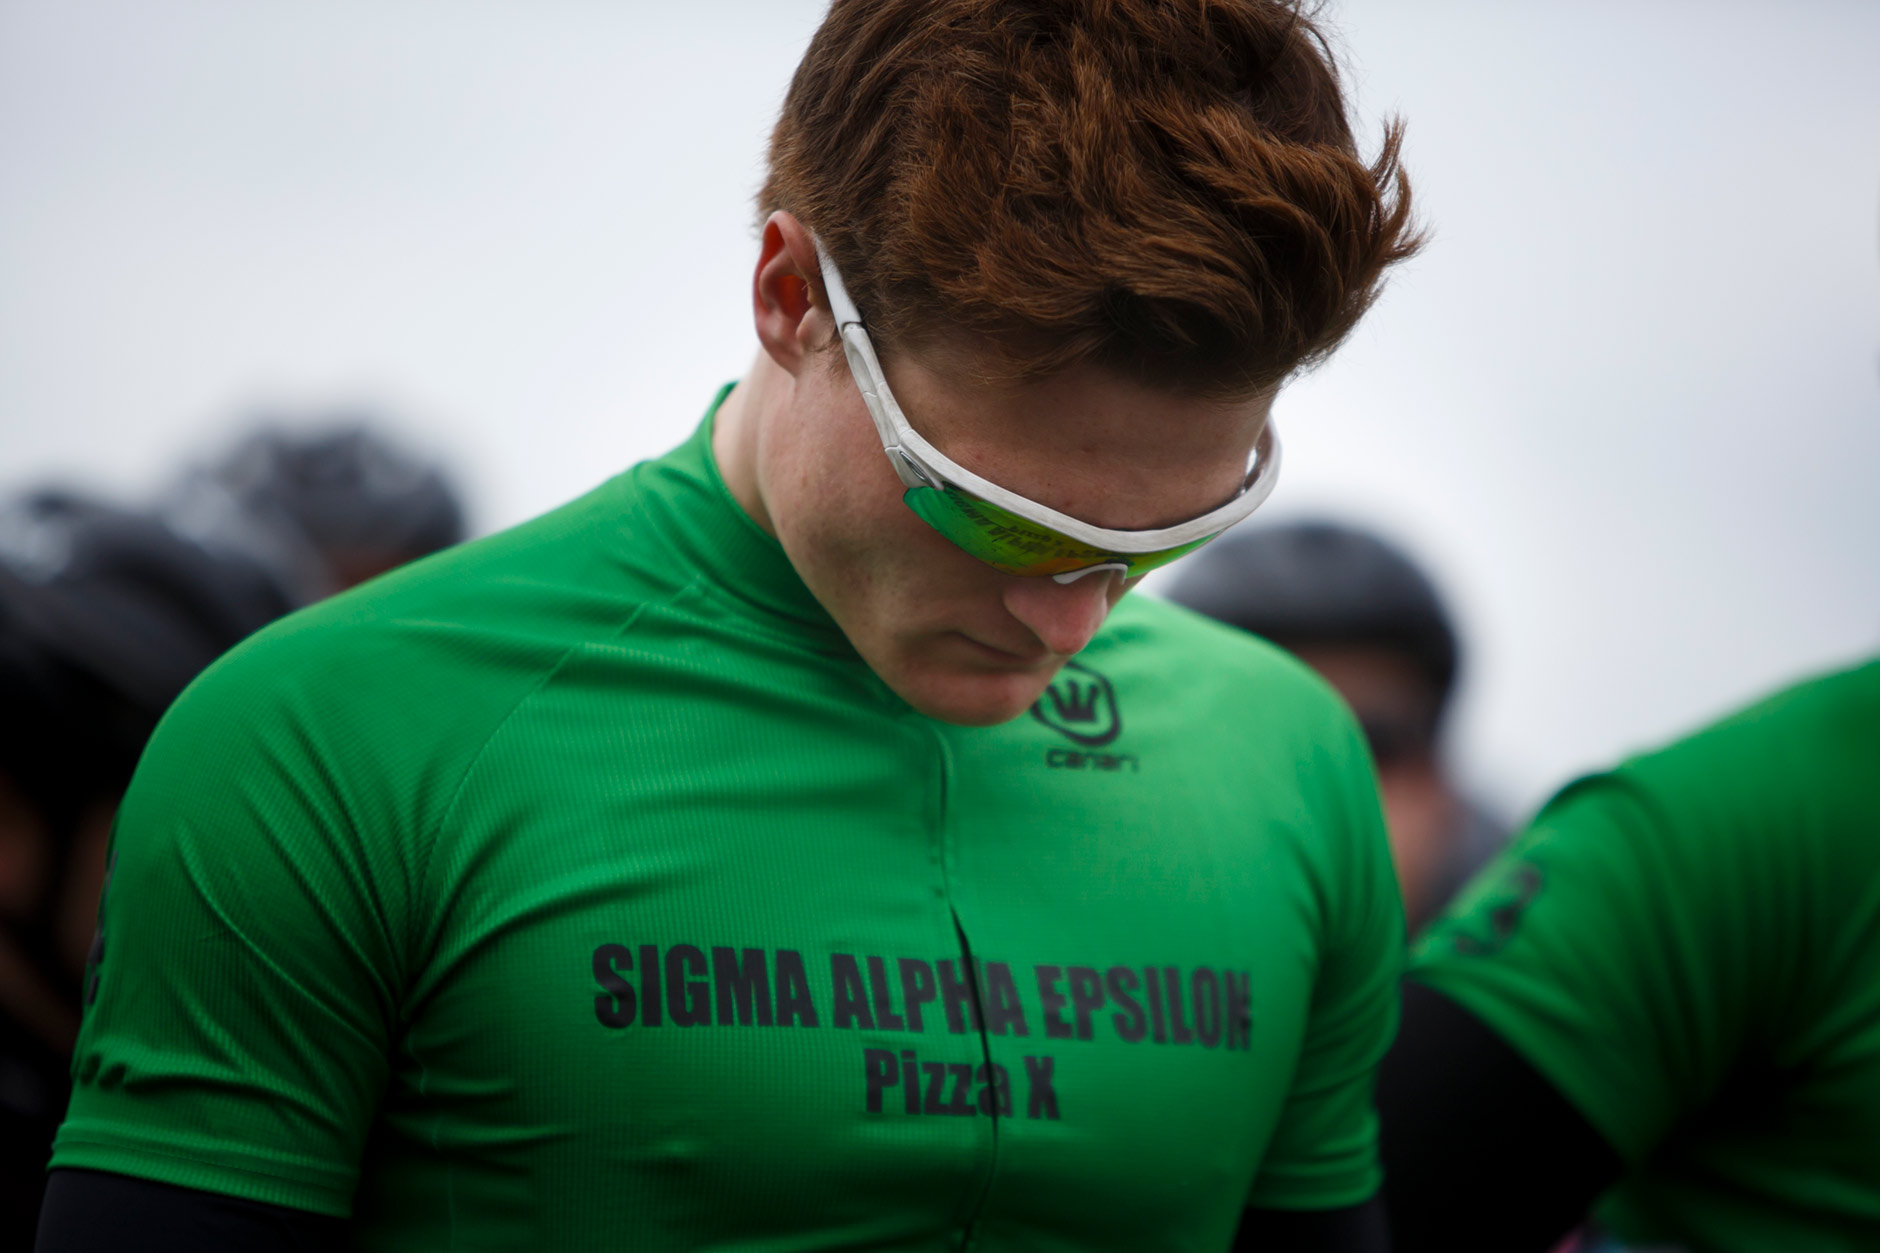 Sigma Alpha Epsilon's Ryan Tuffnell bows his head as he and his teammates wait for the start of team introductions before the Men's Little 500 at Bill Armstrong Stadium on Saturday, April 22, 2017. (James Brosher/IU Communications)